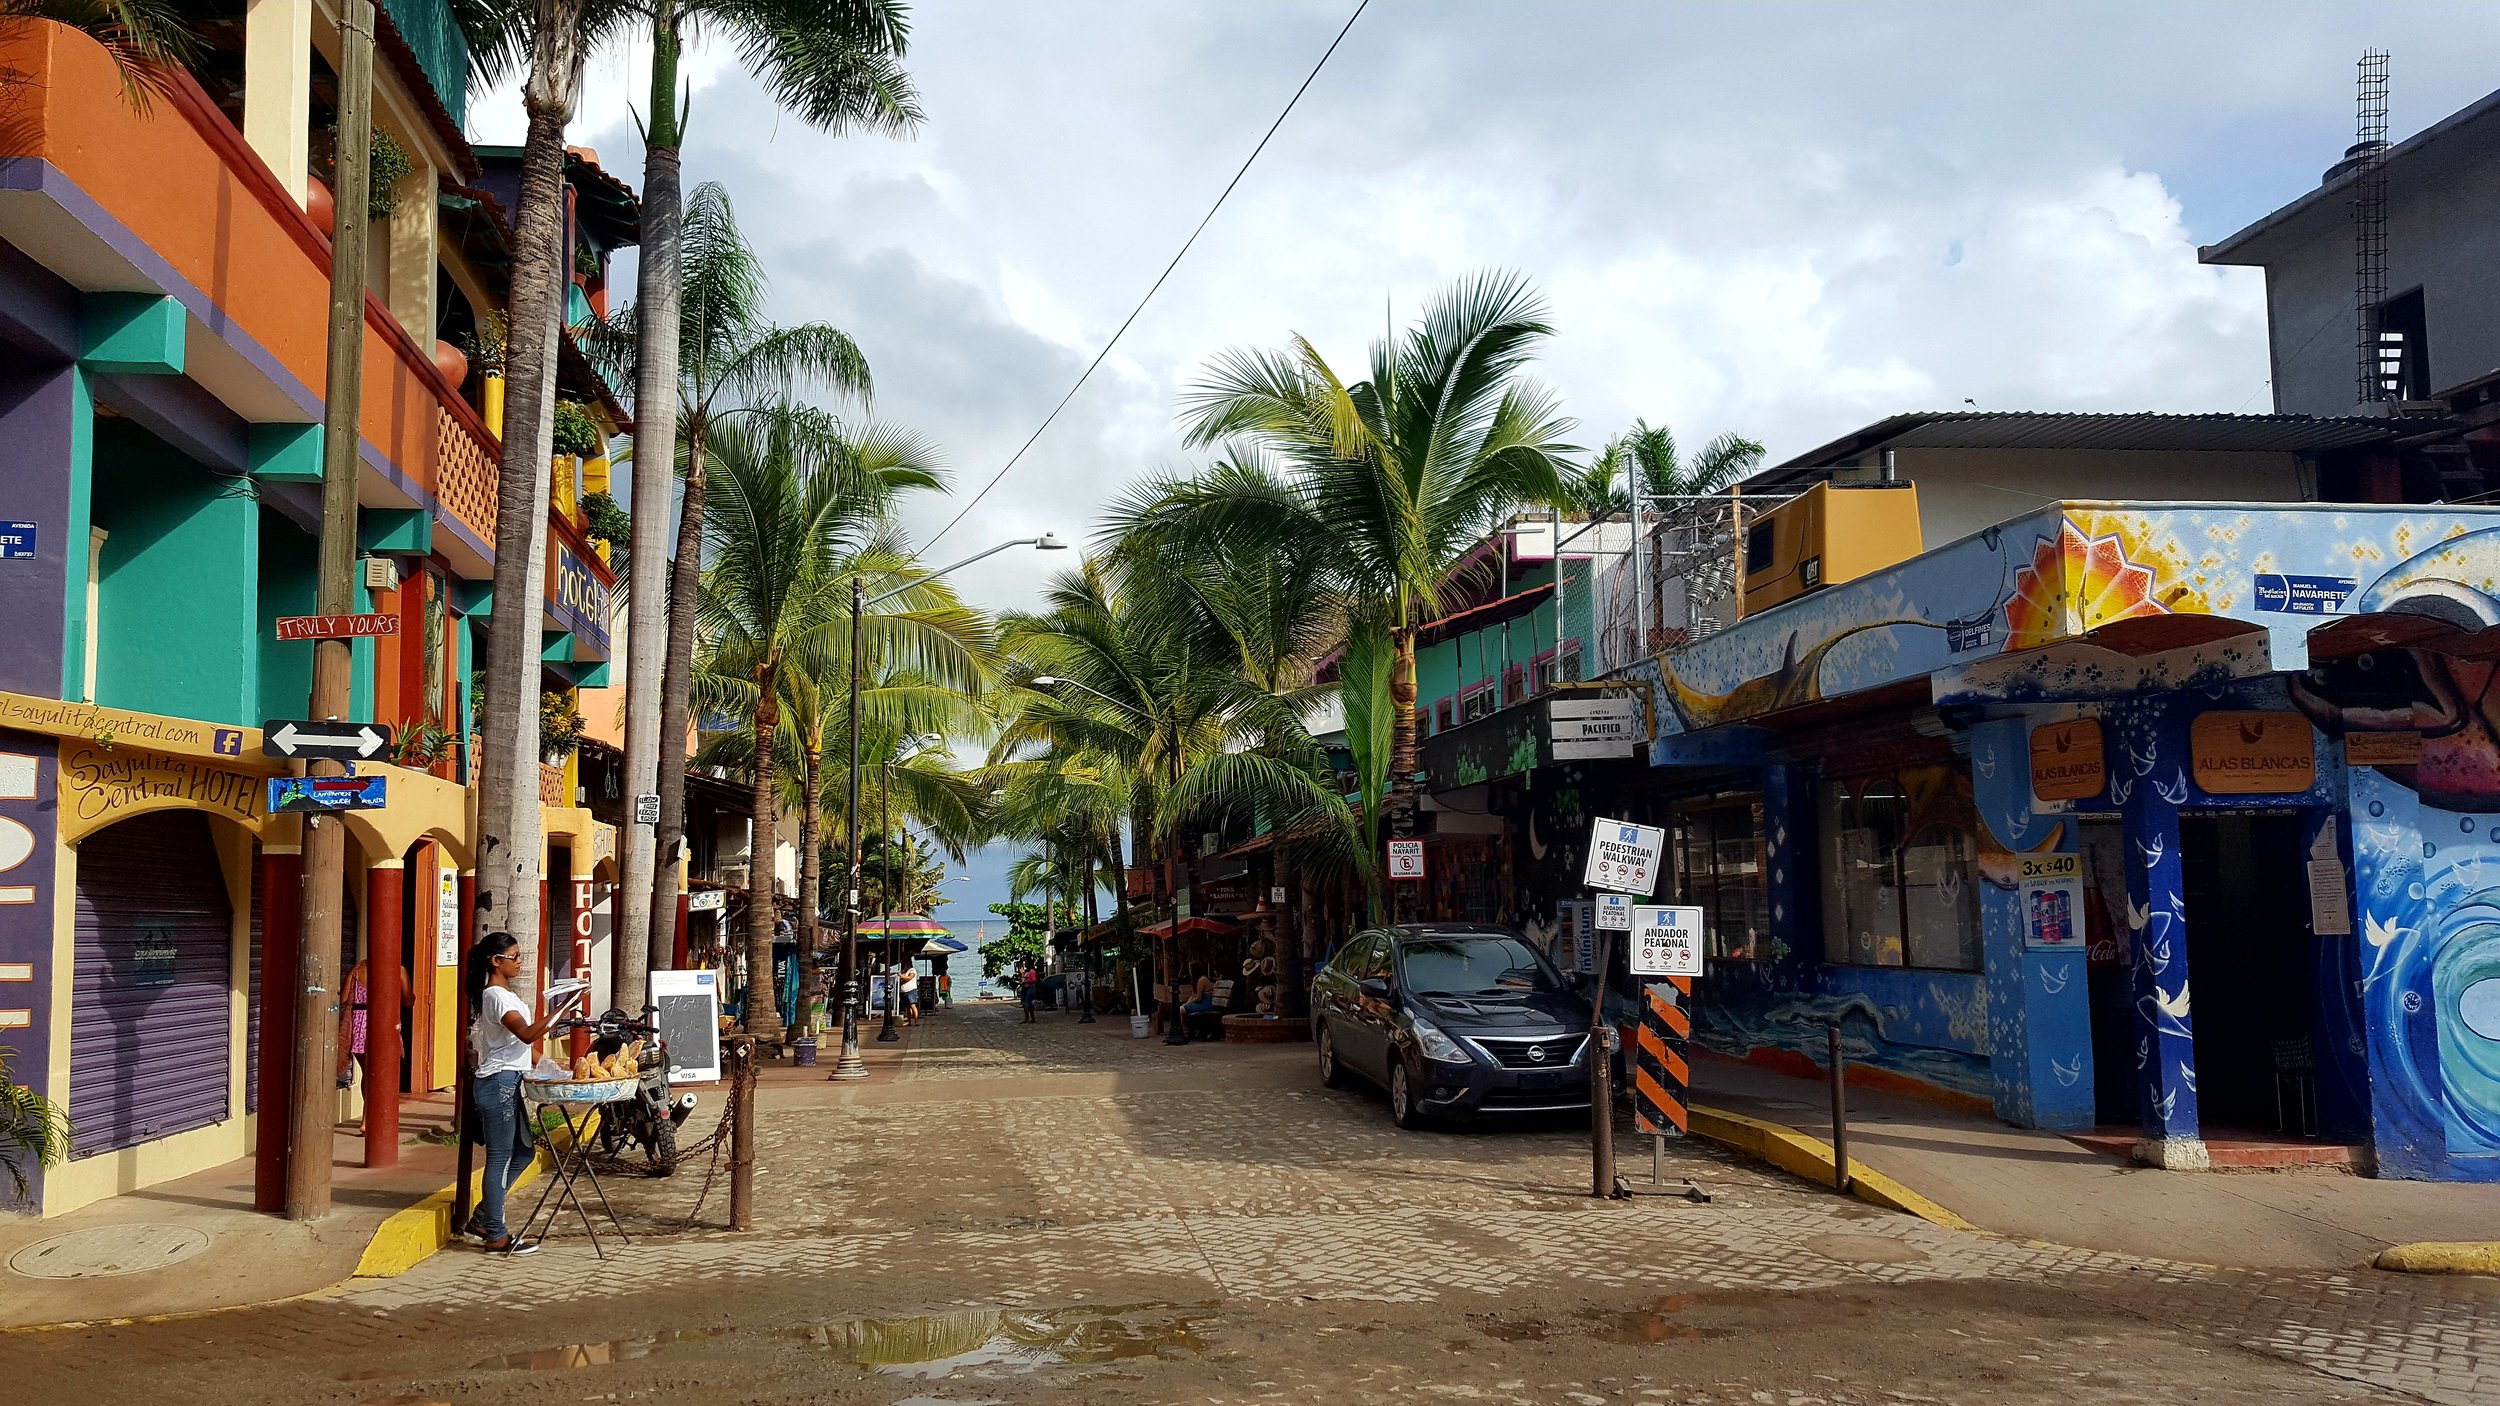 Downtown Sayulita, Mexico